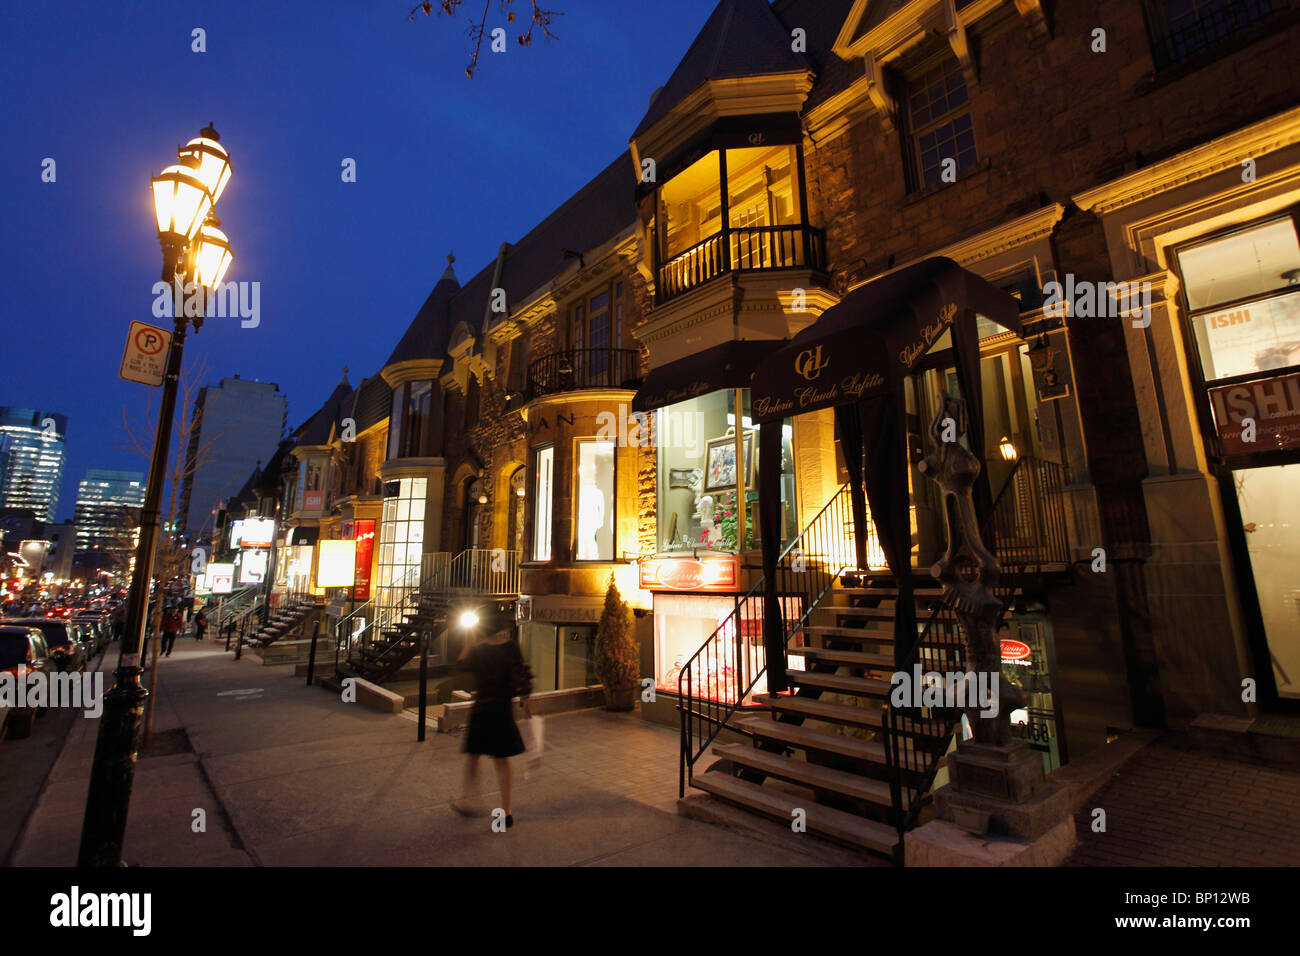 Canada, Quebec, Montreal, Crescent Street boutiques - Stock Image